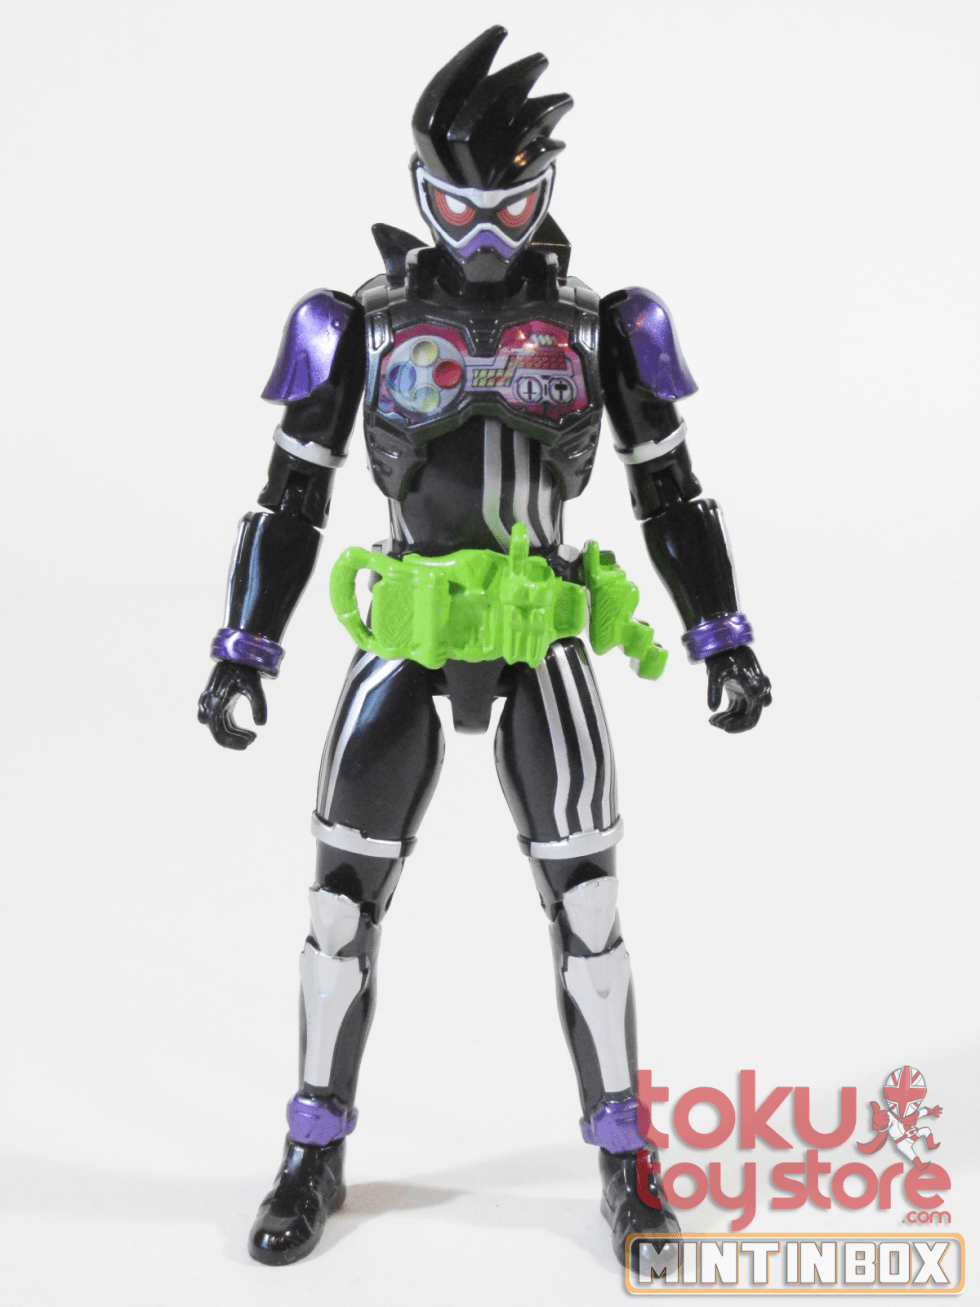 RKF_Genm Level Zero_Toku Toy Store (2)